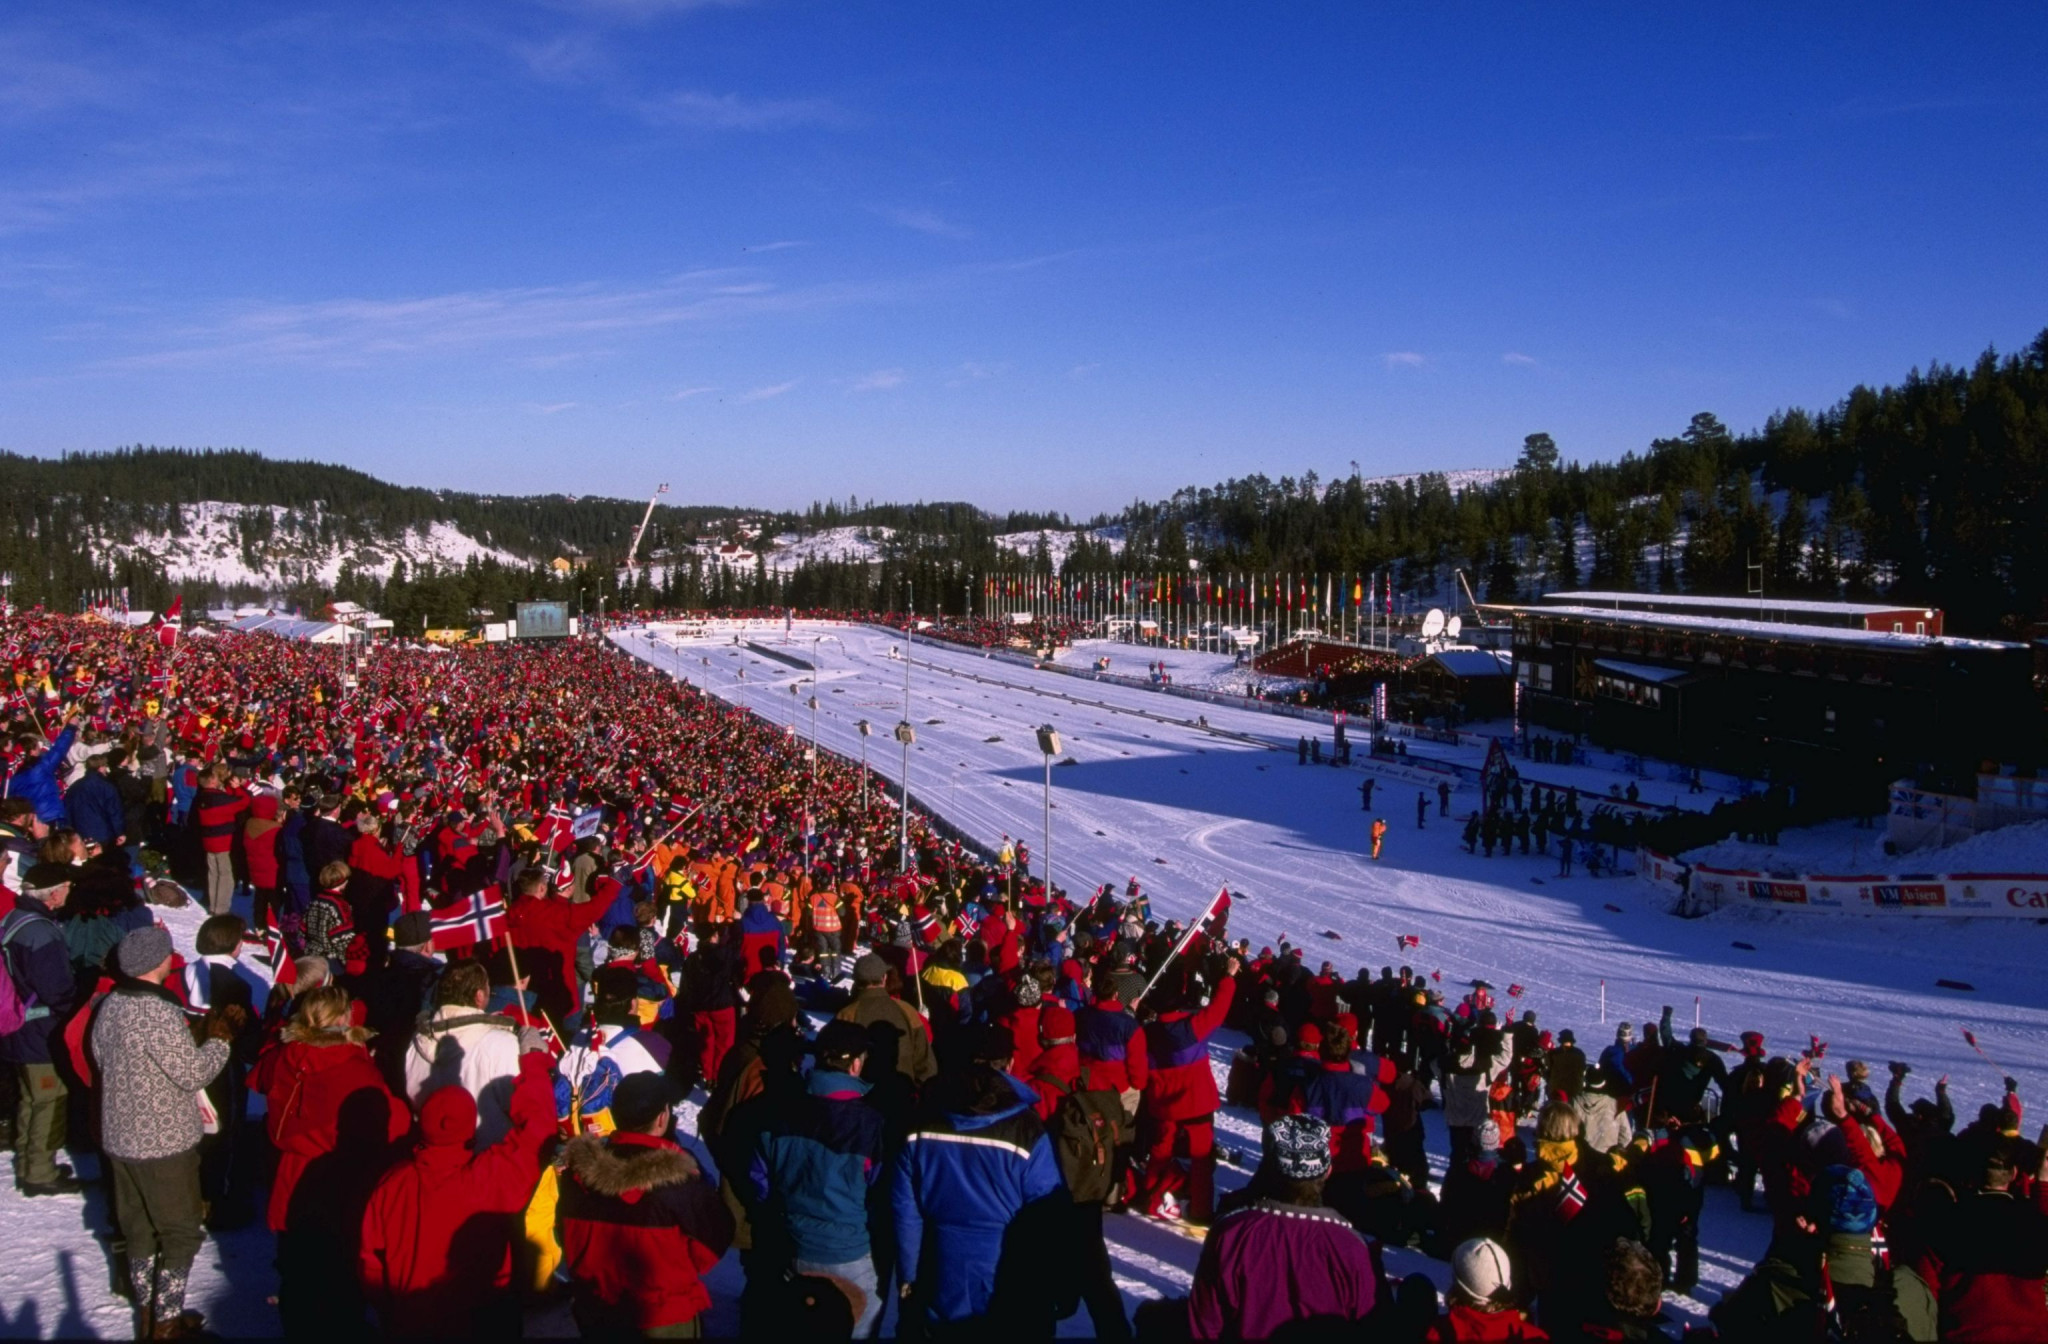 Trondheim also hosted the FIS Nordic World Ski Championships in 1997, with the event set to return in 2025 ©Getty Images